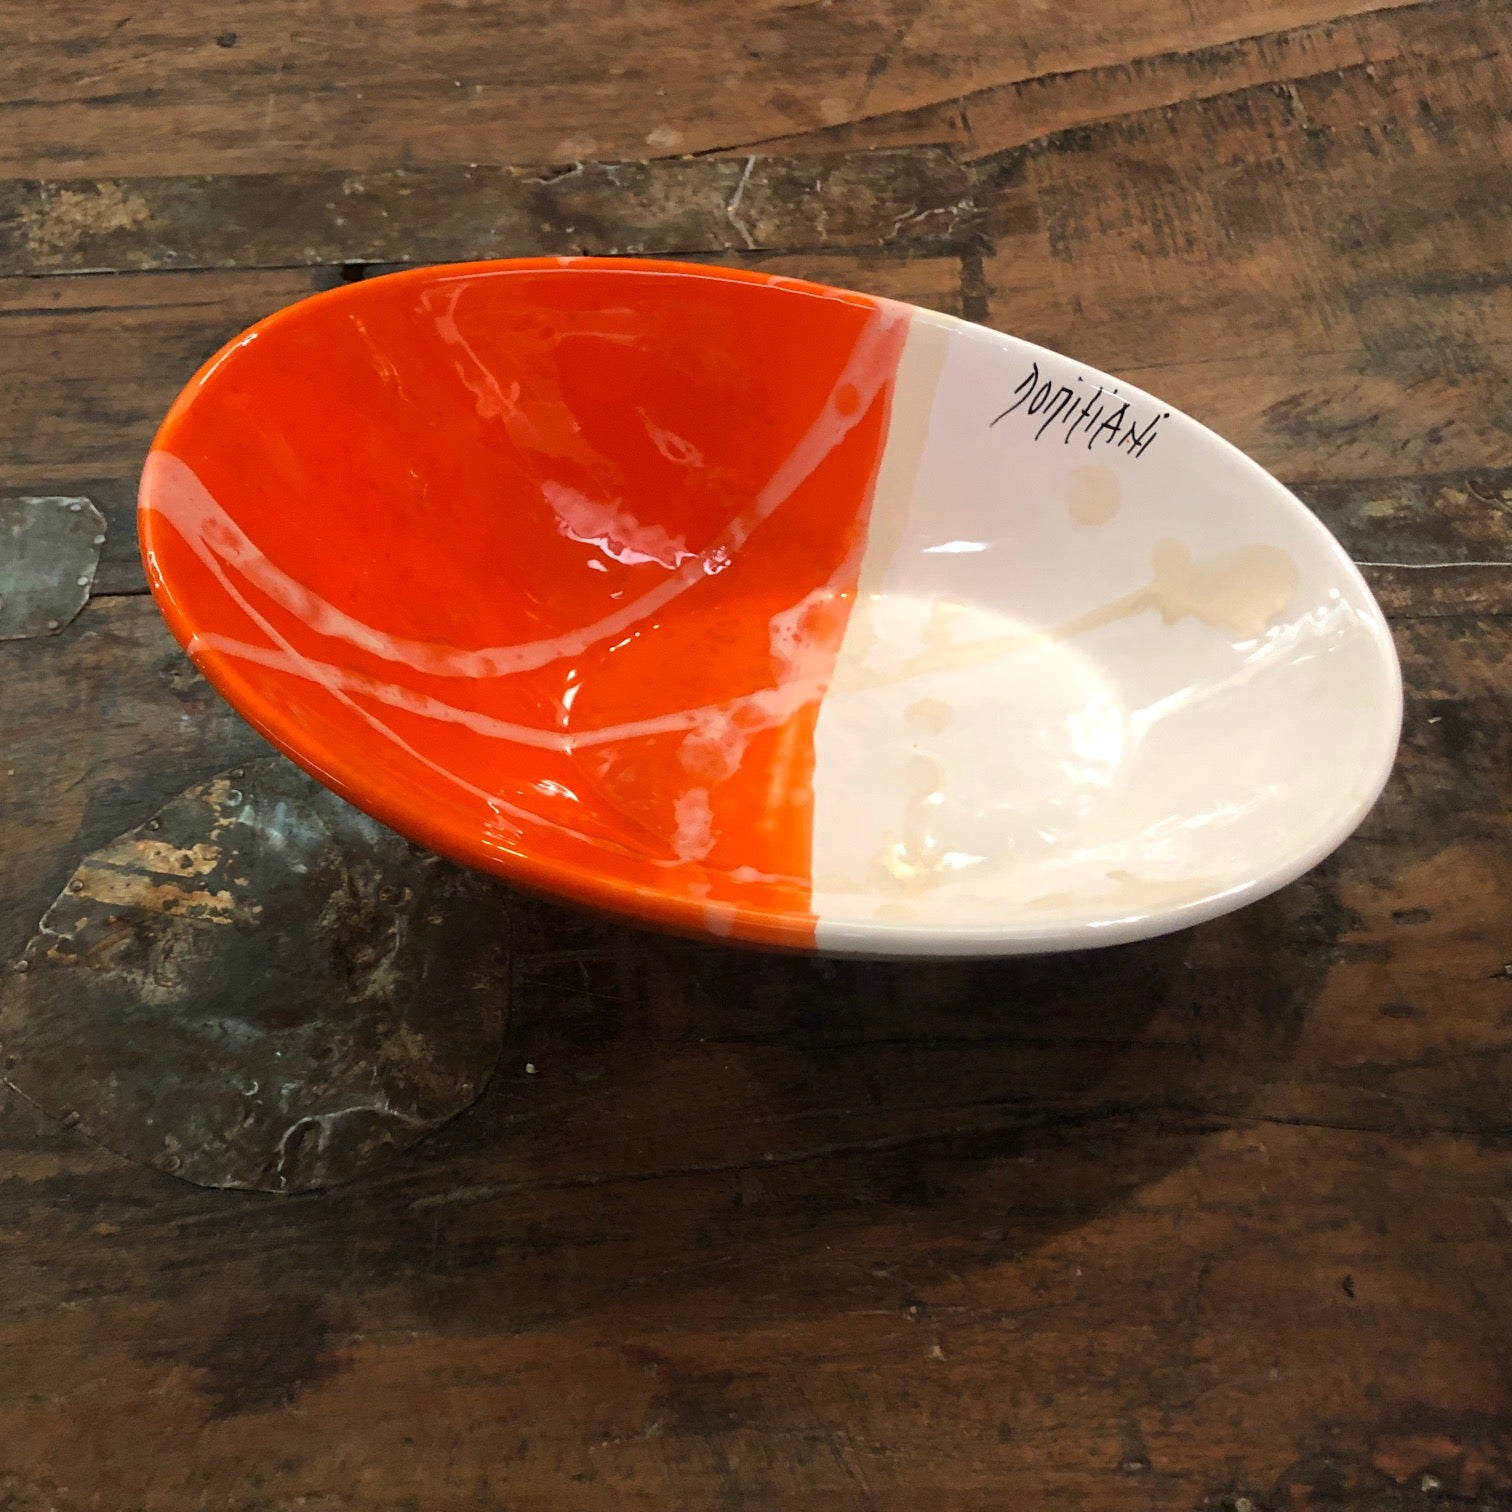 Domiziani Oval & Oblique Bowl - small COD 81